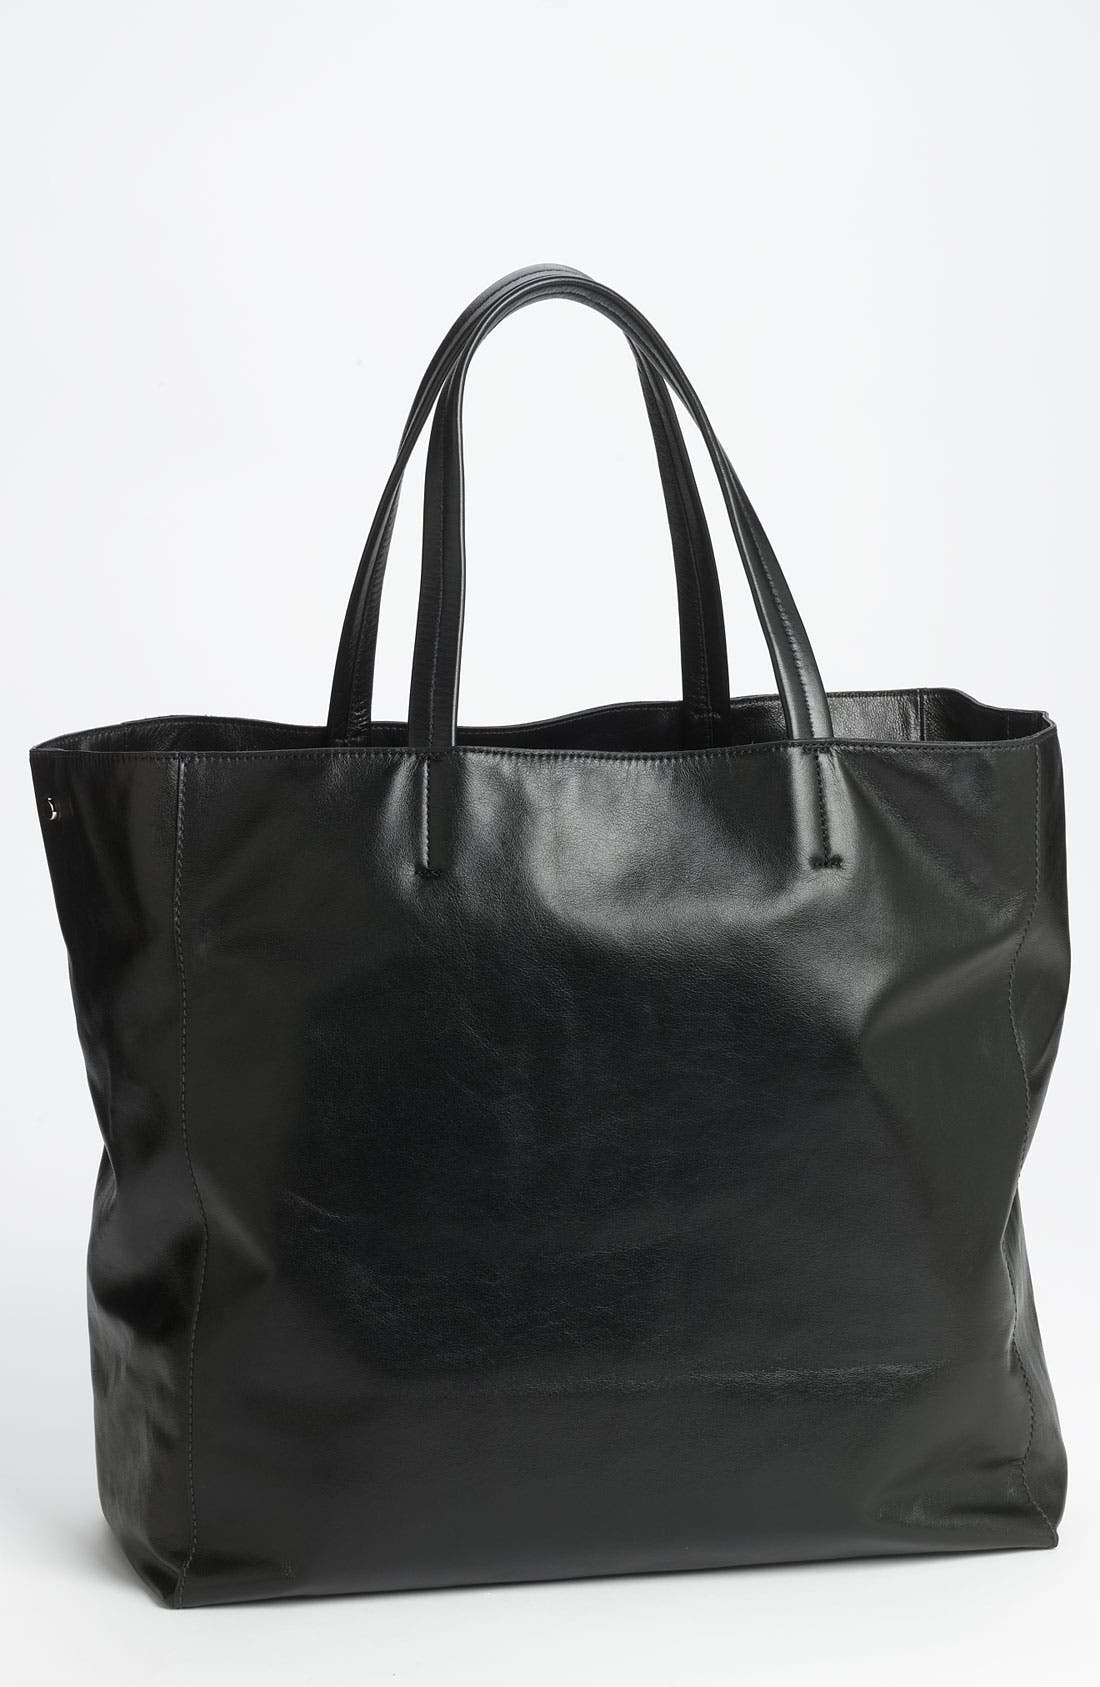 Alternate Image 1 Selected - Lafayette 148 New York 'Anna' Leather Tote